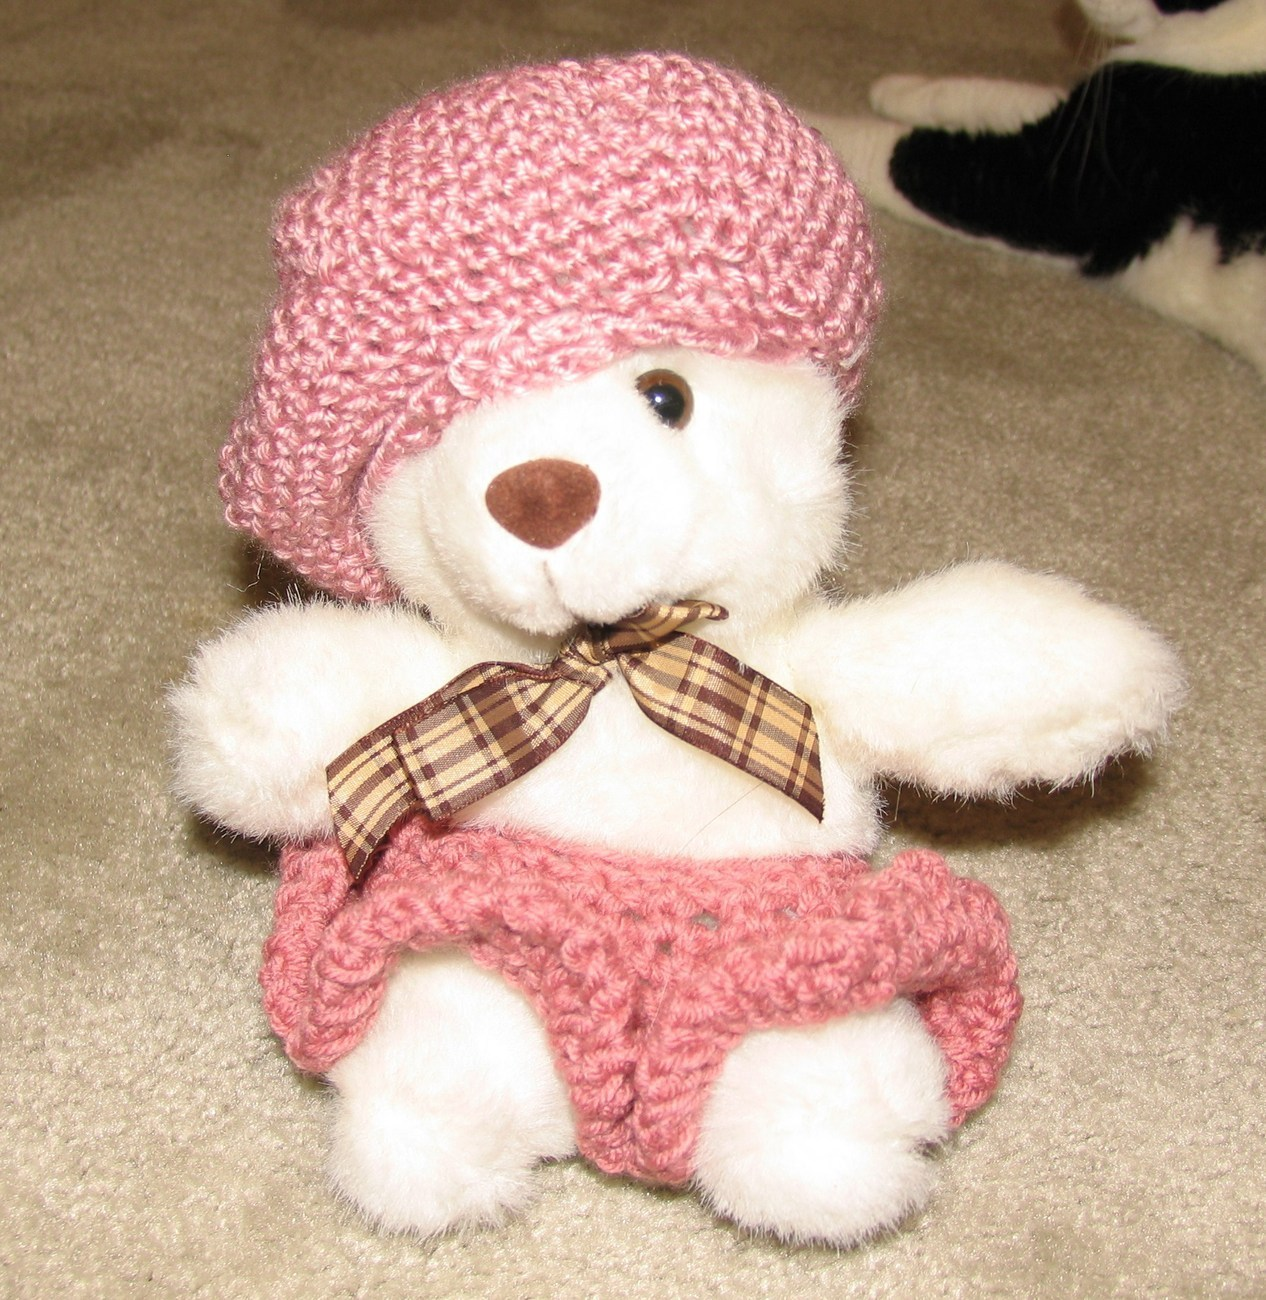 "Primary image for White Plush 12"" Bear with Custom Crocheted Heather Tone Pink Outfit"